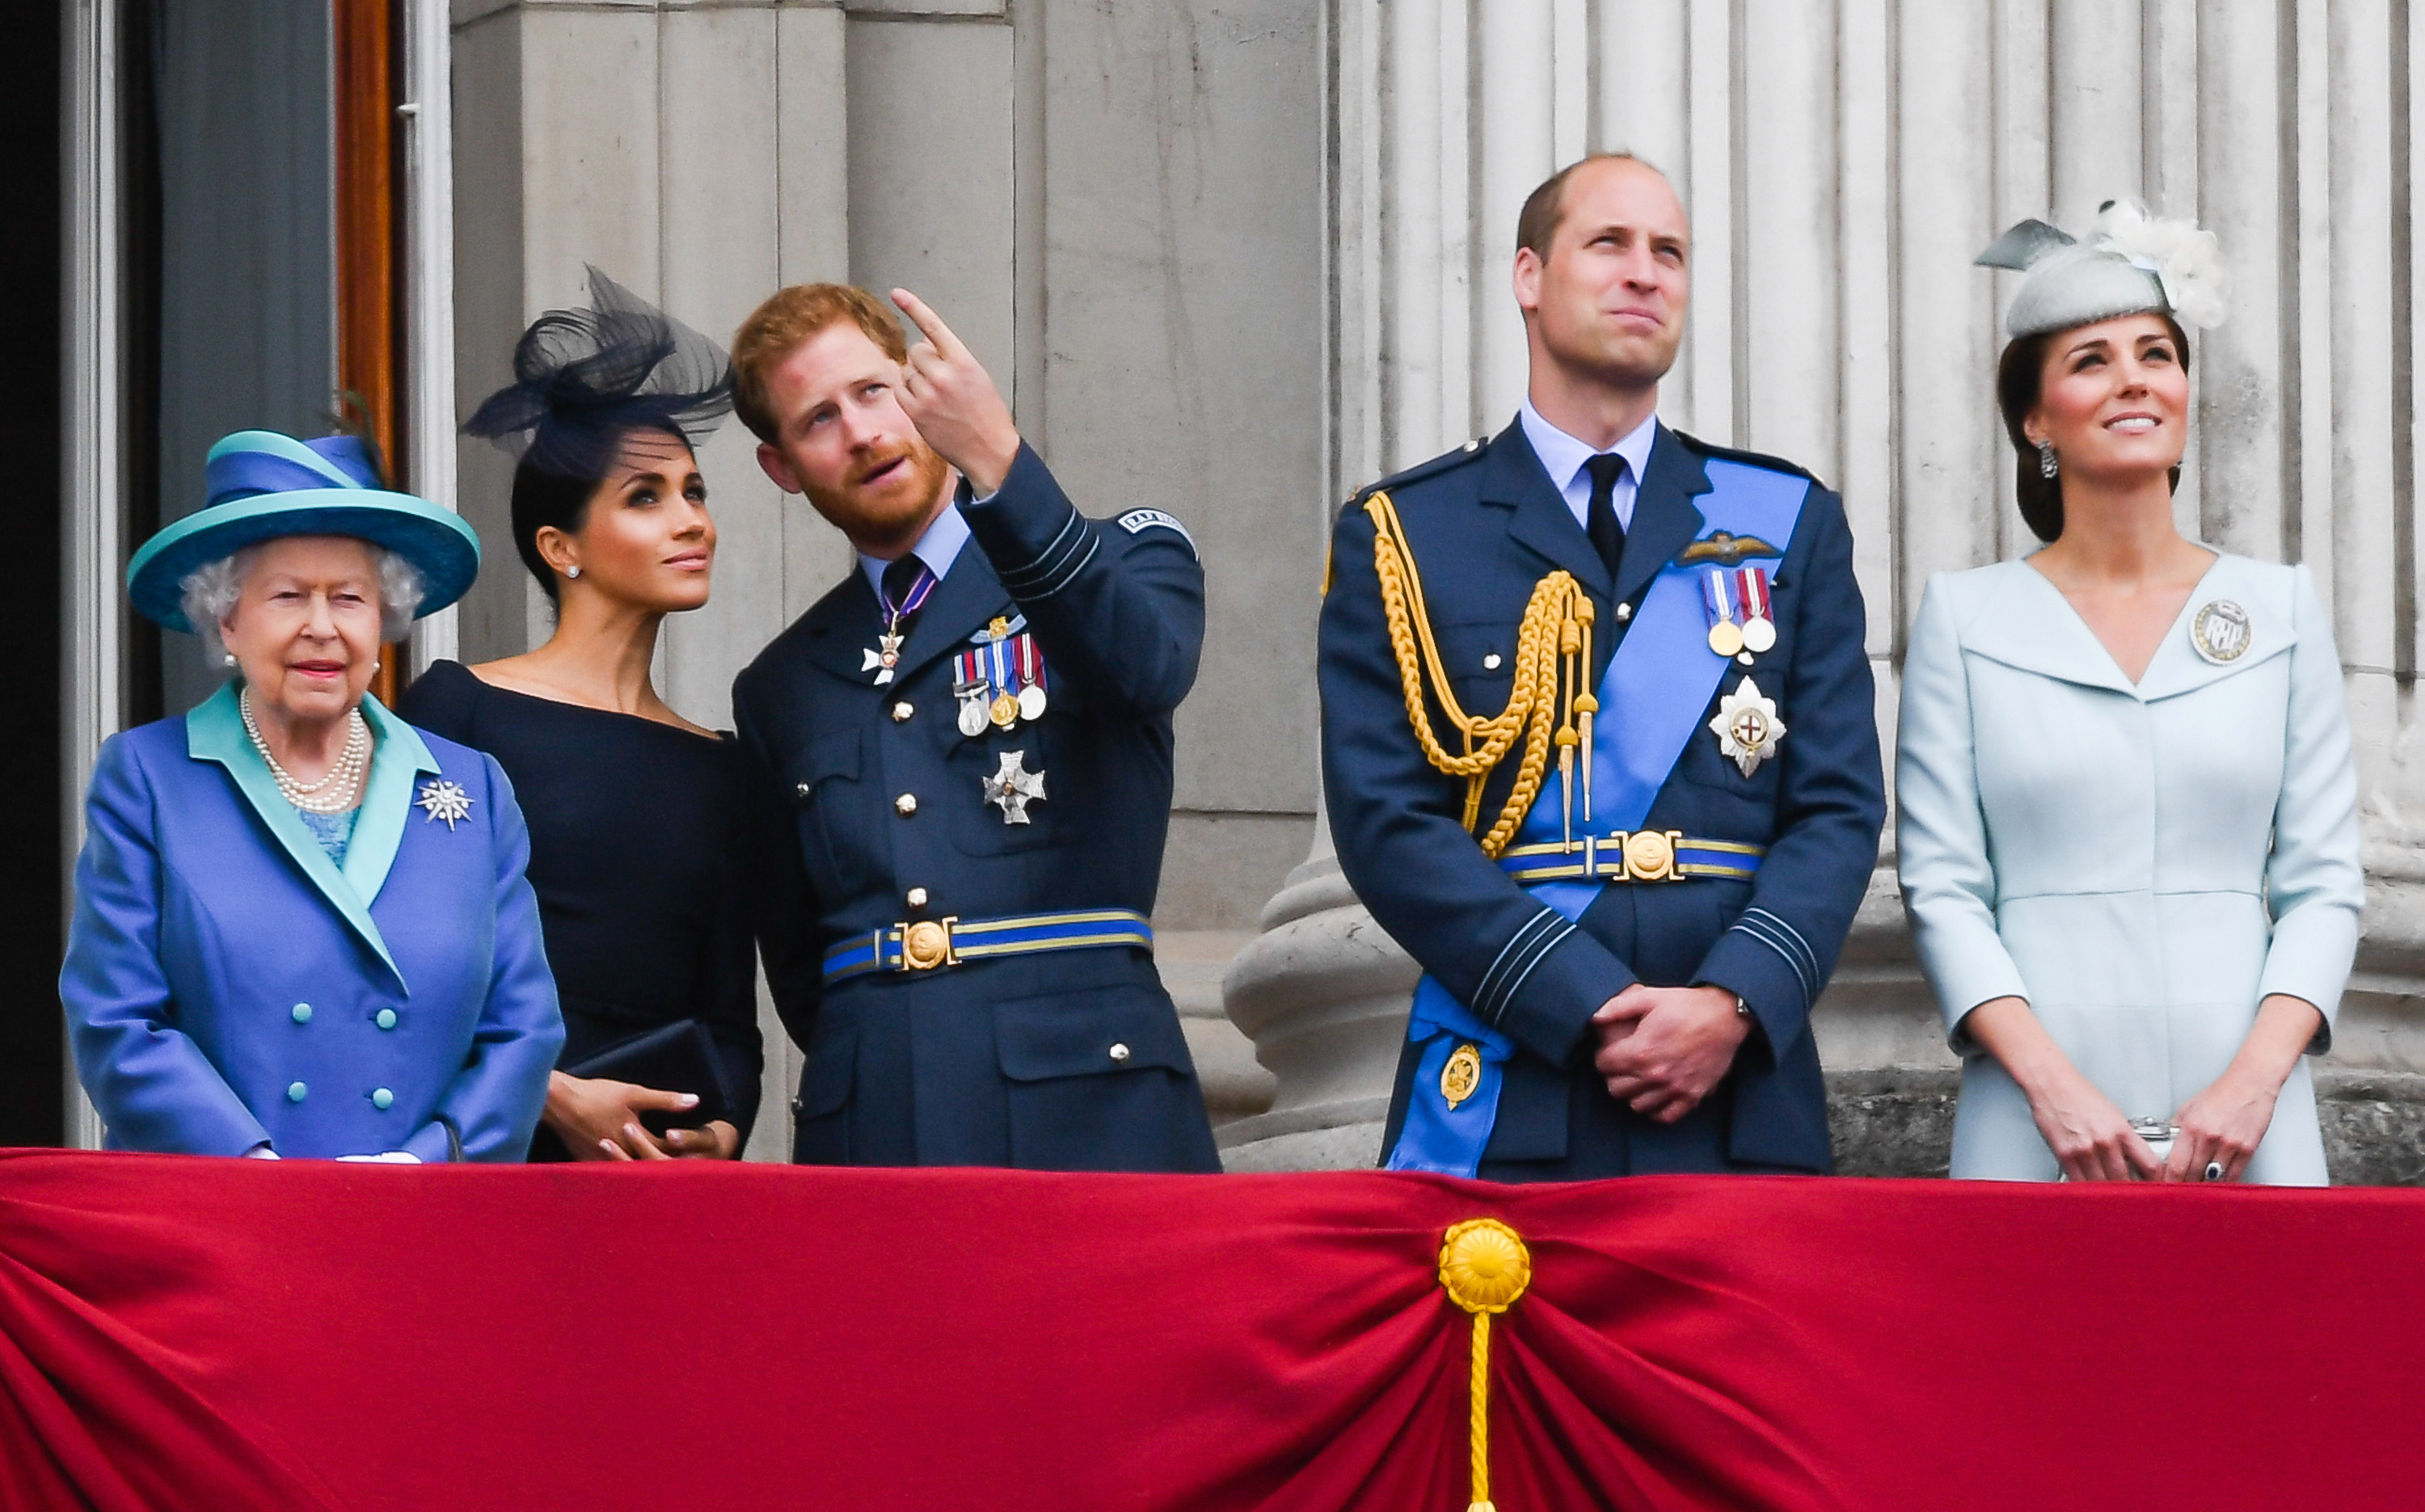 Meghan and Prince Harry with The Queen and Prince William at Buckingham Palace